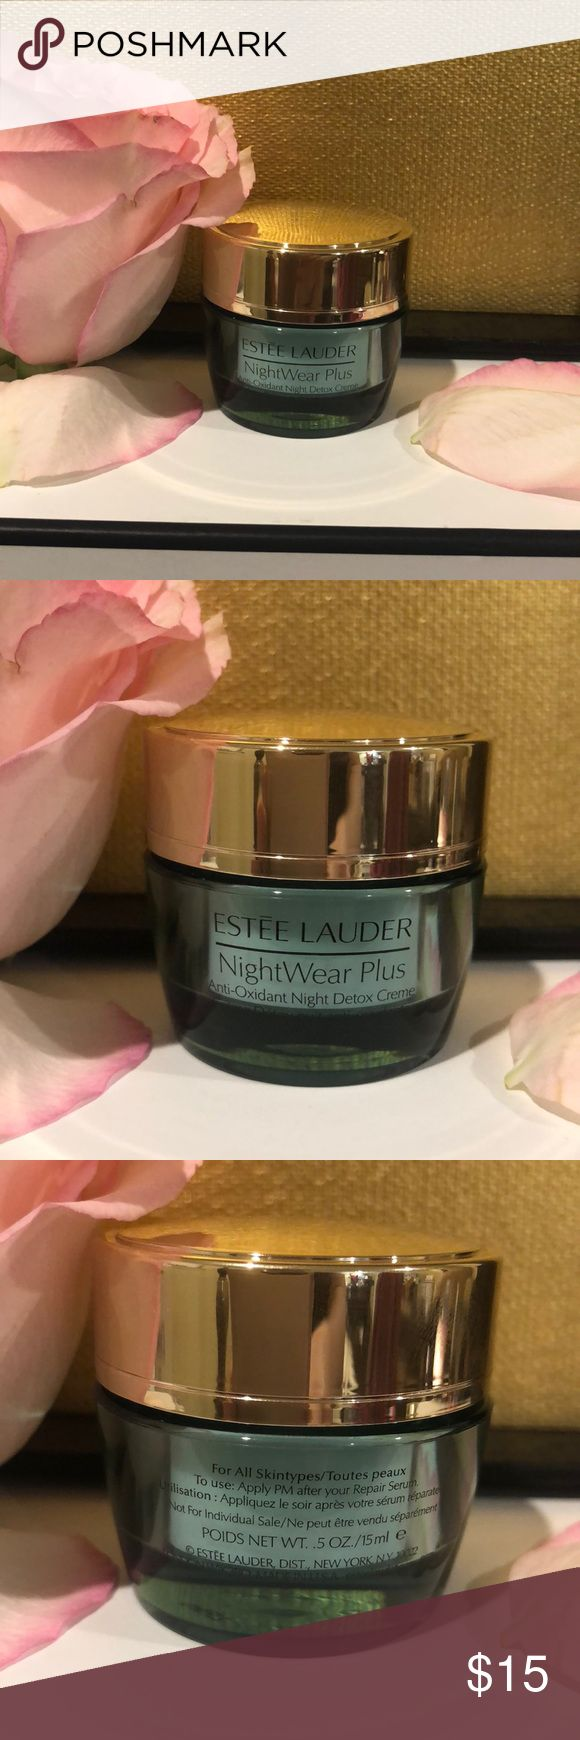 Estée Lauder NightWear Plus .5oz 15ml) This refreshingly lush yet lightweight night crème helps your skin detox from the visible effects that accumulate during the day, purifying & refinishing skin's surface & visibly reducing pores. Defends against signs of premature aging diminishes their appearance with the brand's Super Antioxidant Complex, which delivers deep, long-lasting moisture. Nighttime skin-soothers help minimize irritation that can peak at night. NEW & UNUSED. Thank you for…